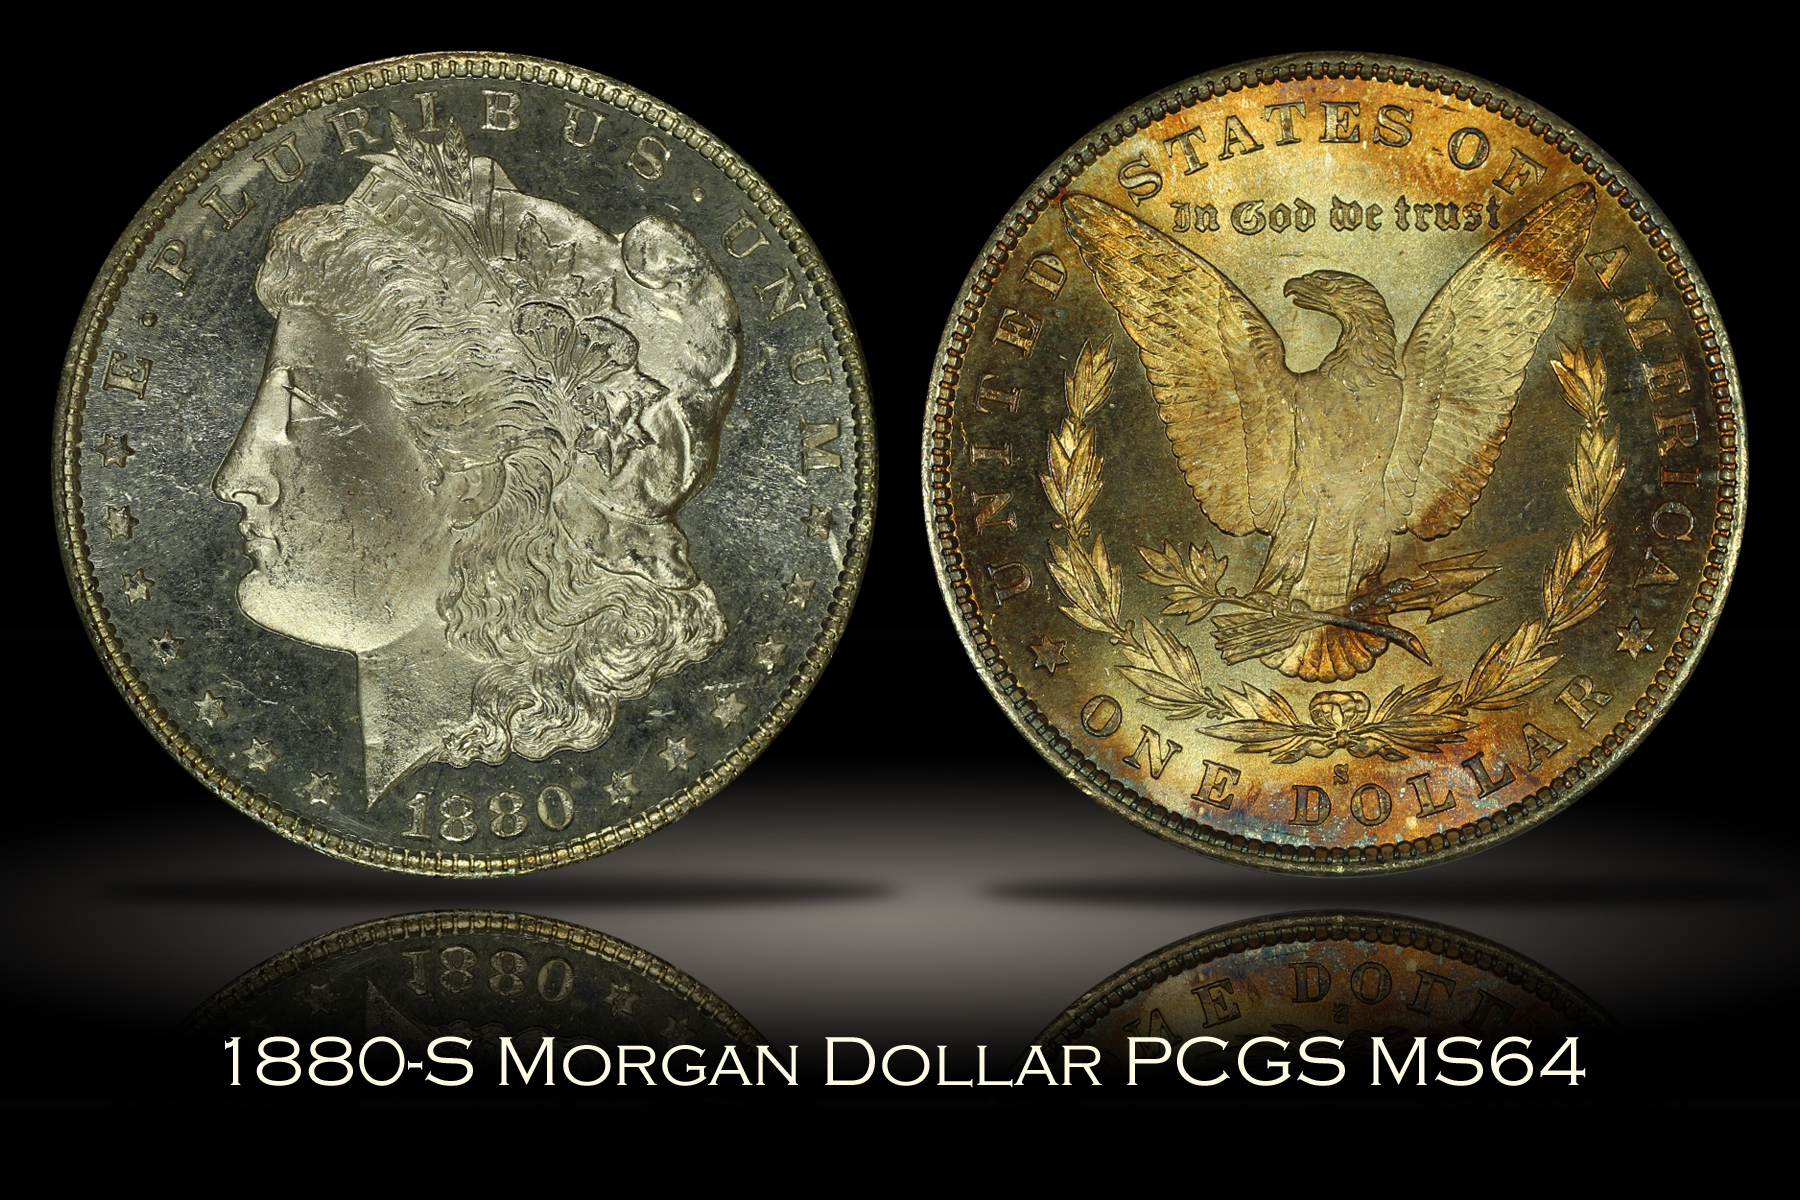 1880-S Morgan Dollar PCGS MS64